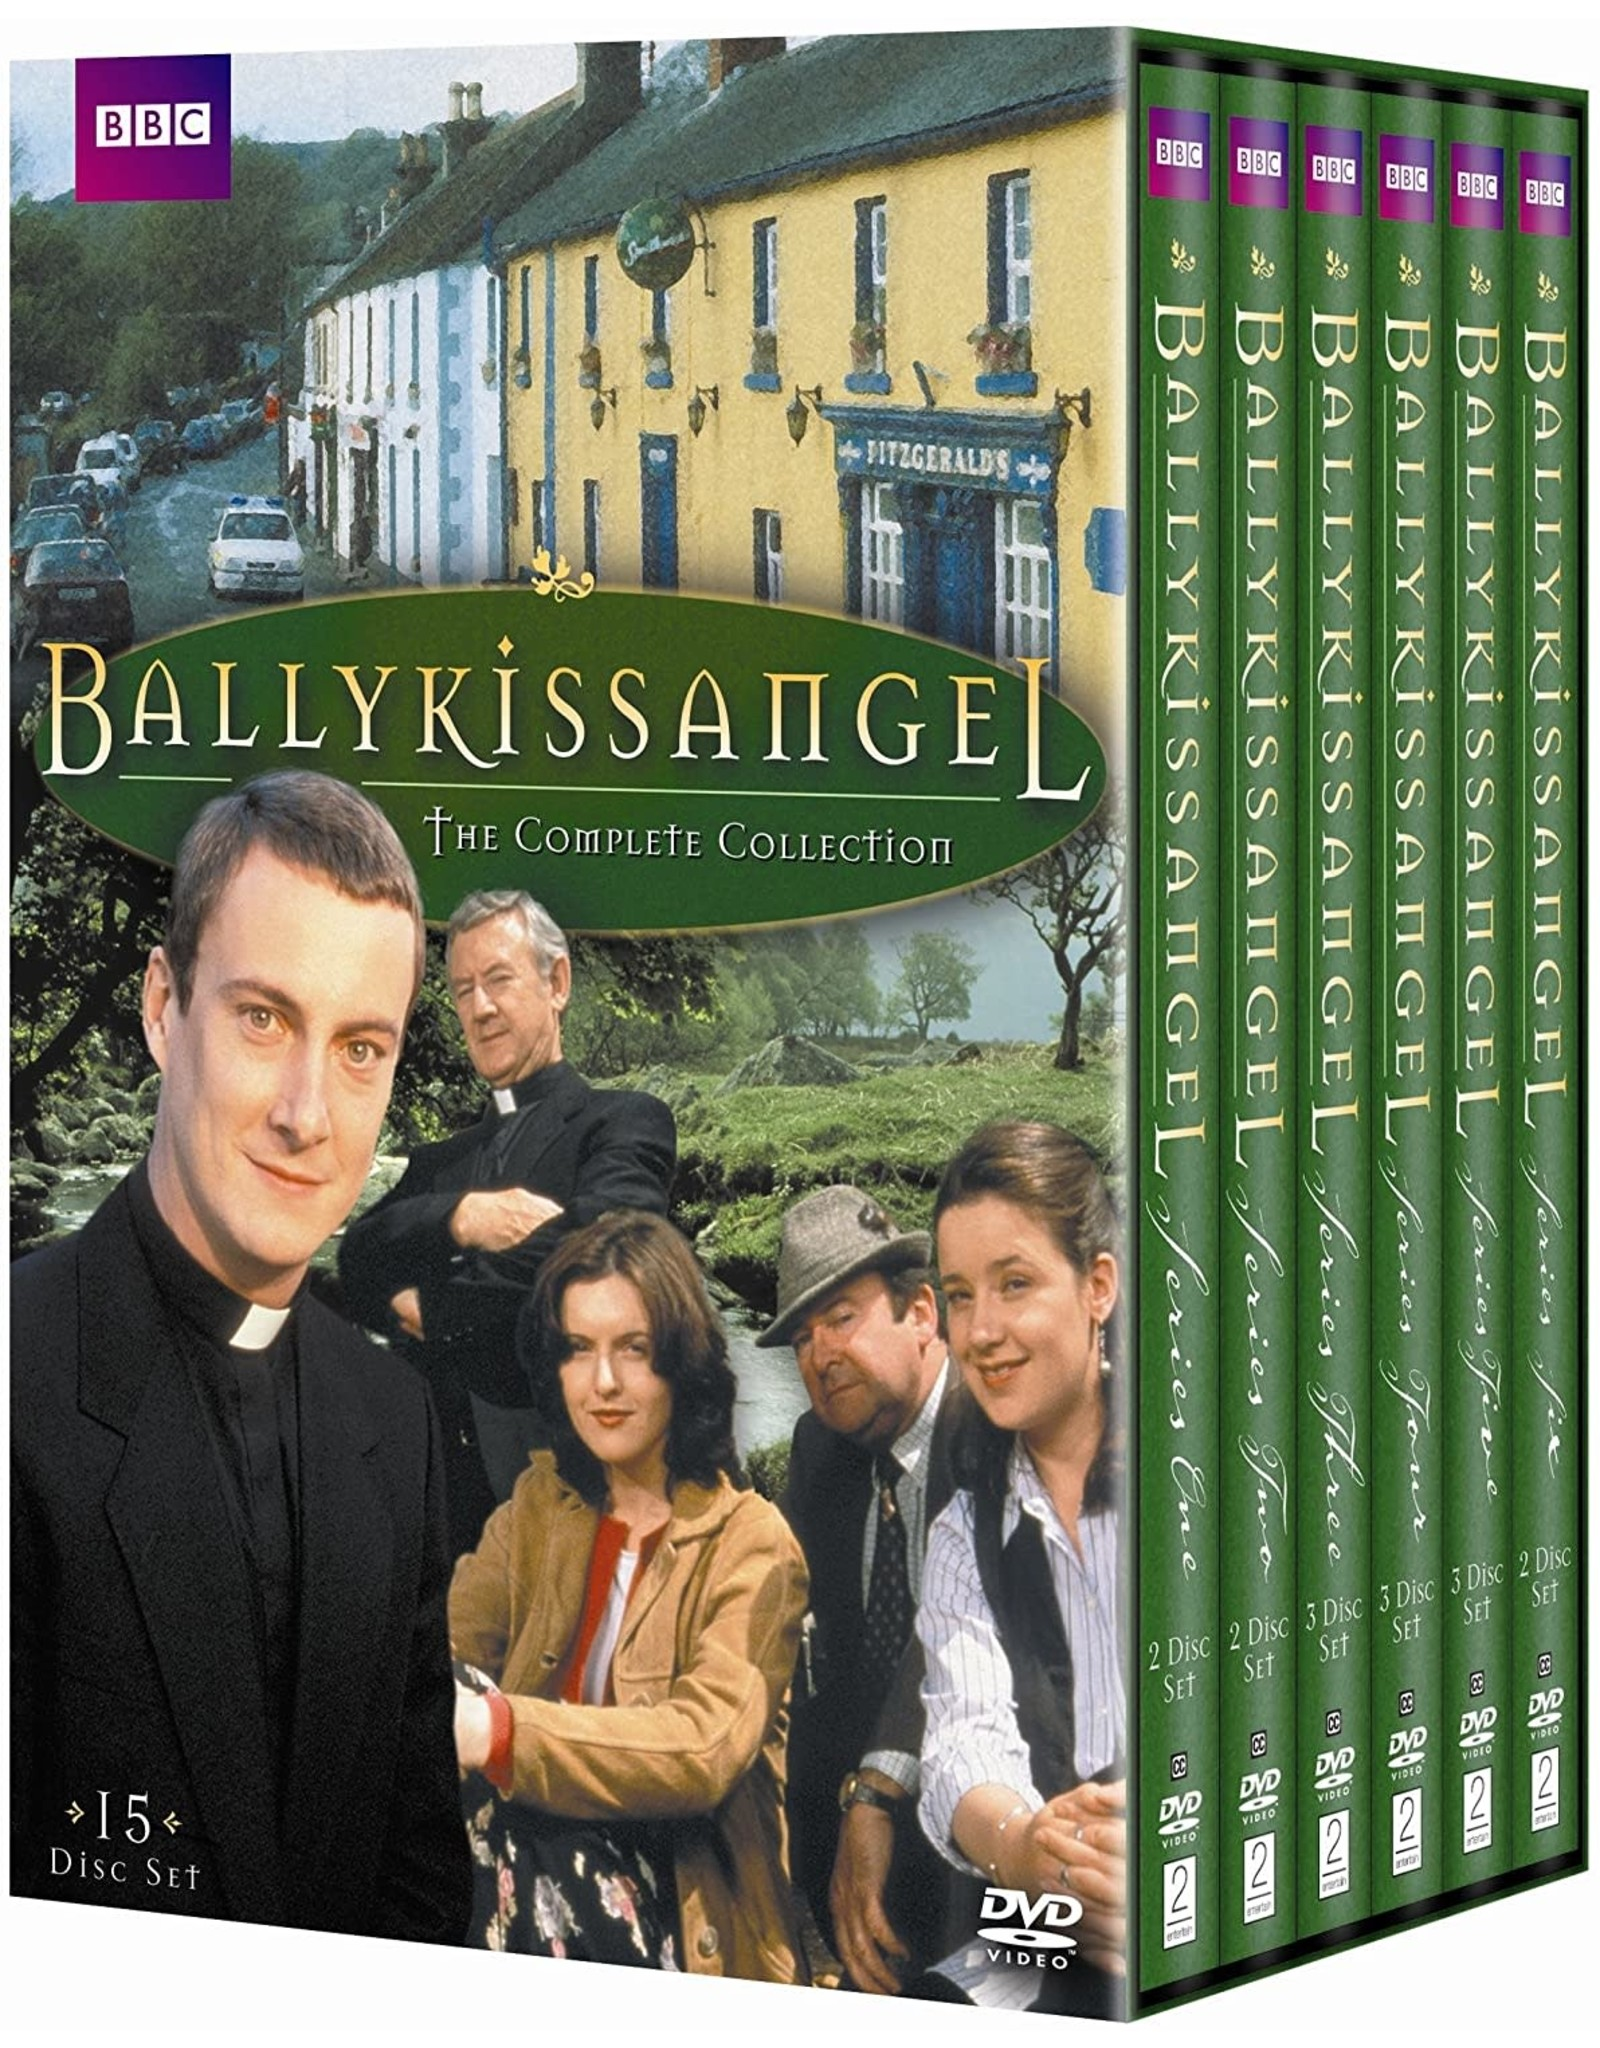 Cult and Cool Ballykissangel The Complete Collection